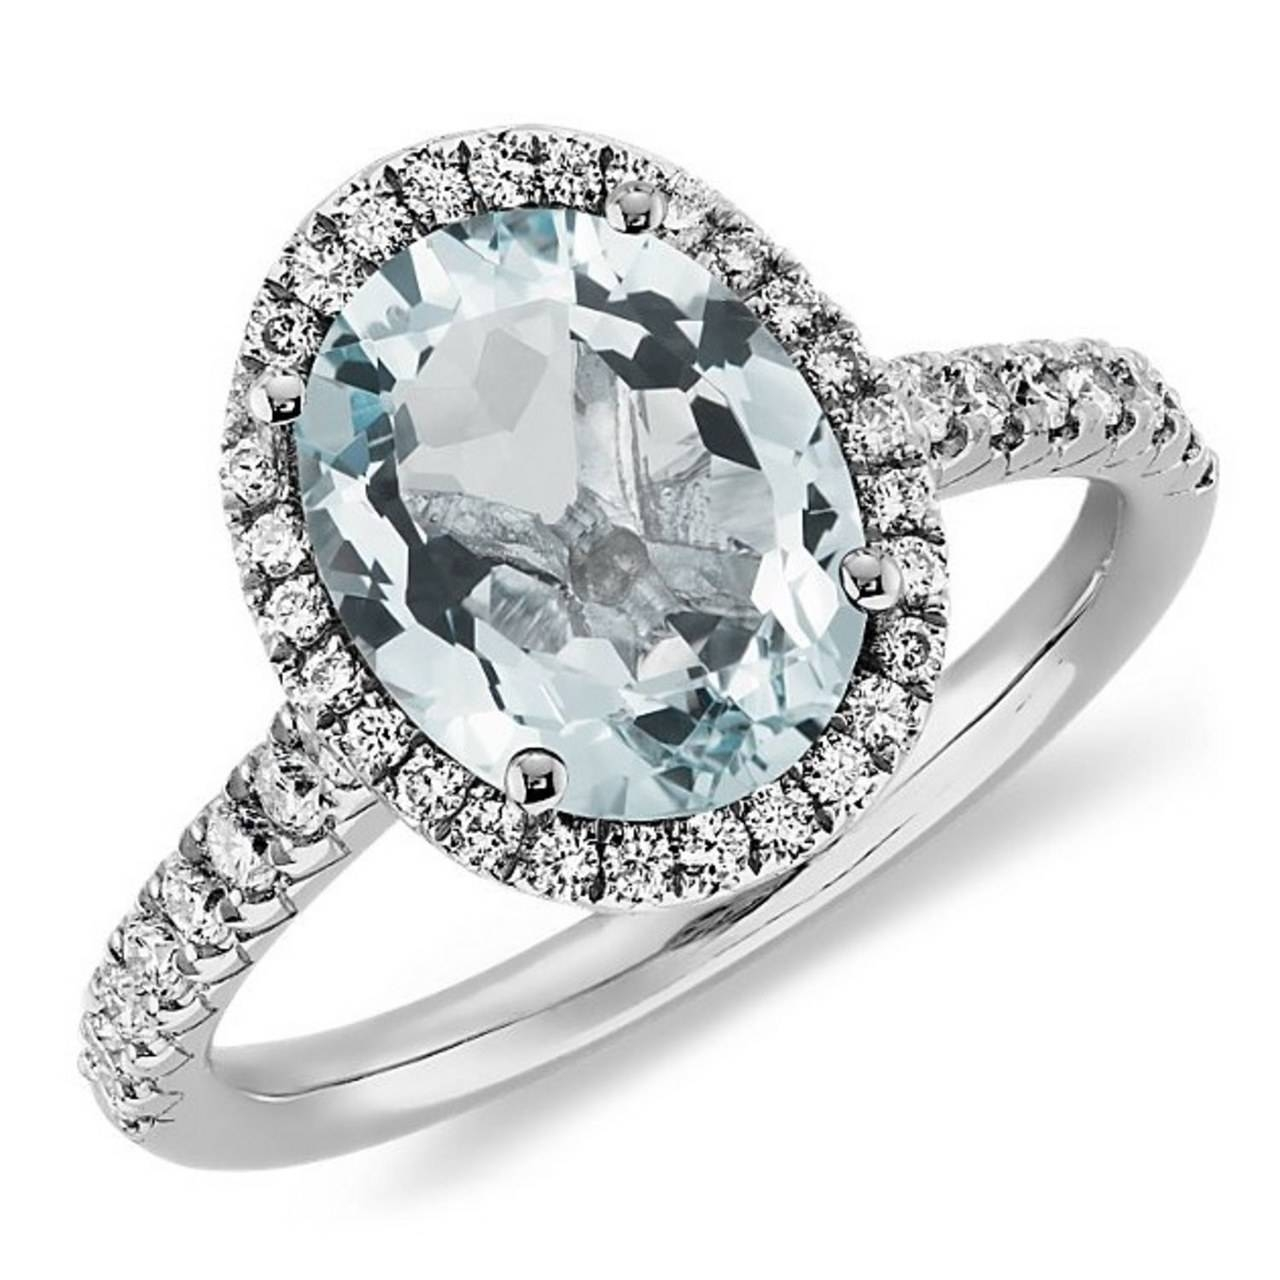 8 Aquamarine Engagement Rings That Give Diamond Rings A Run For Pertaining To Diamond Aquamarine Engagement Rings (View 2 of 15)